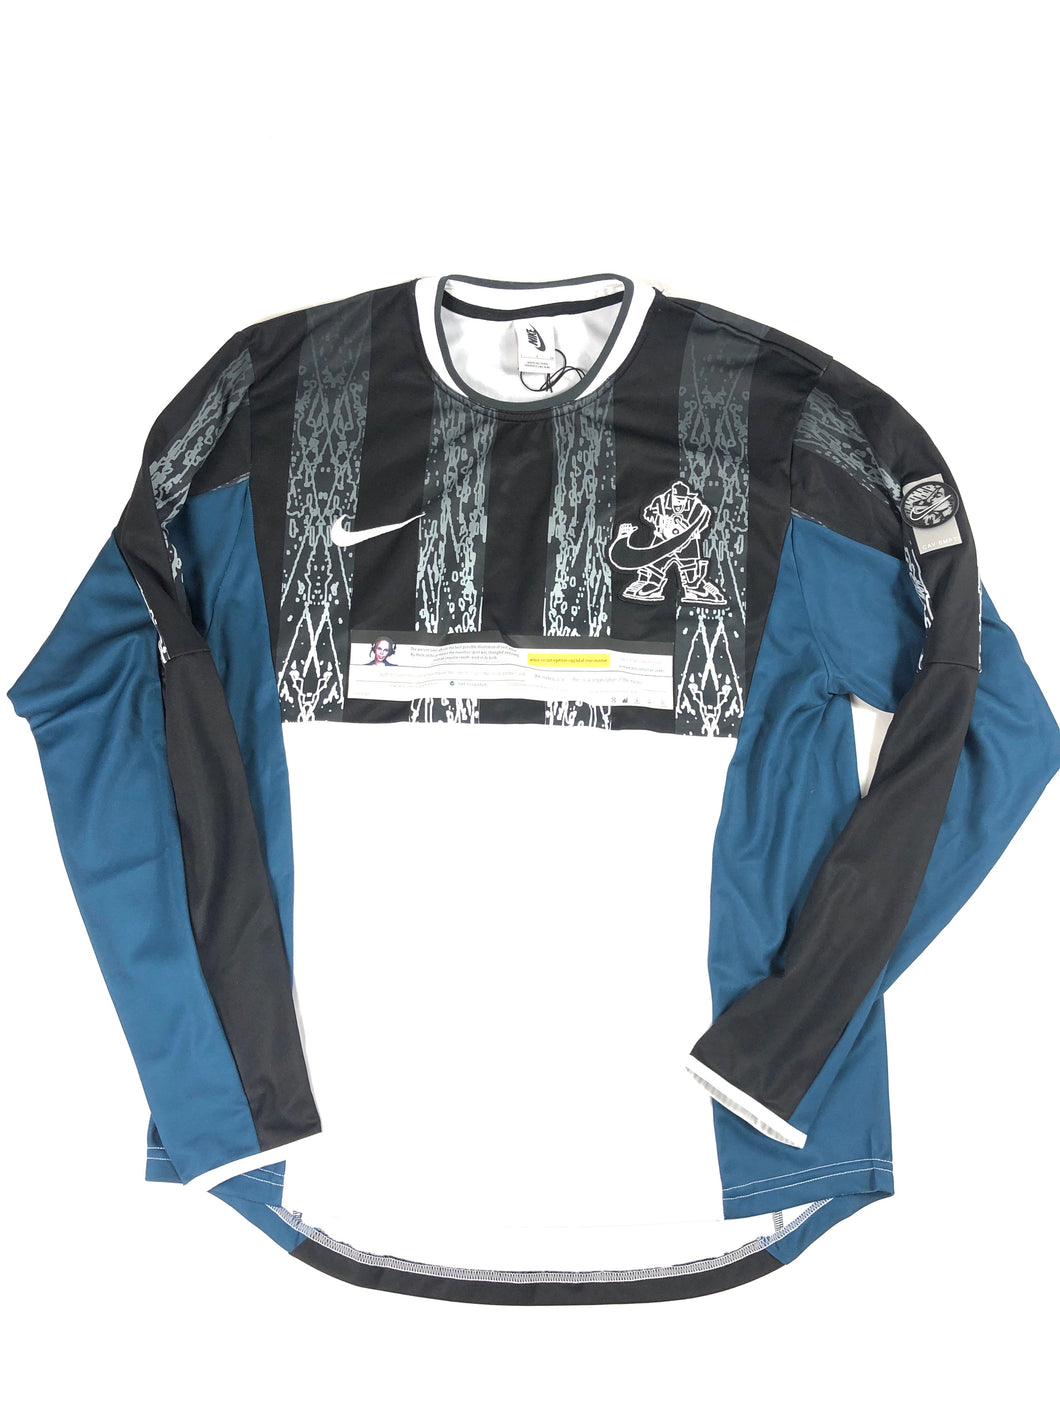 Cav Empt x Nike Long Sleeve